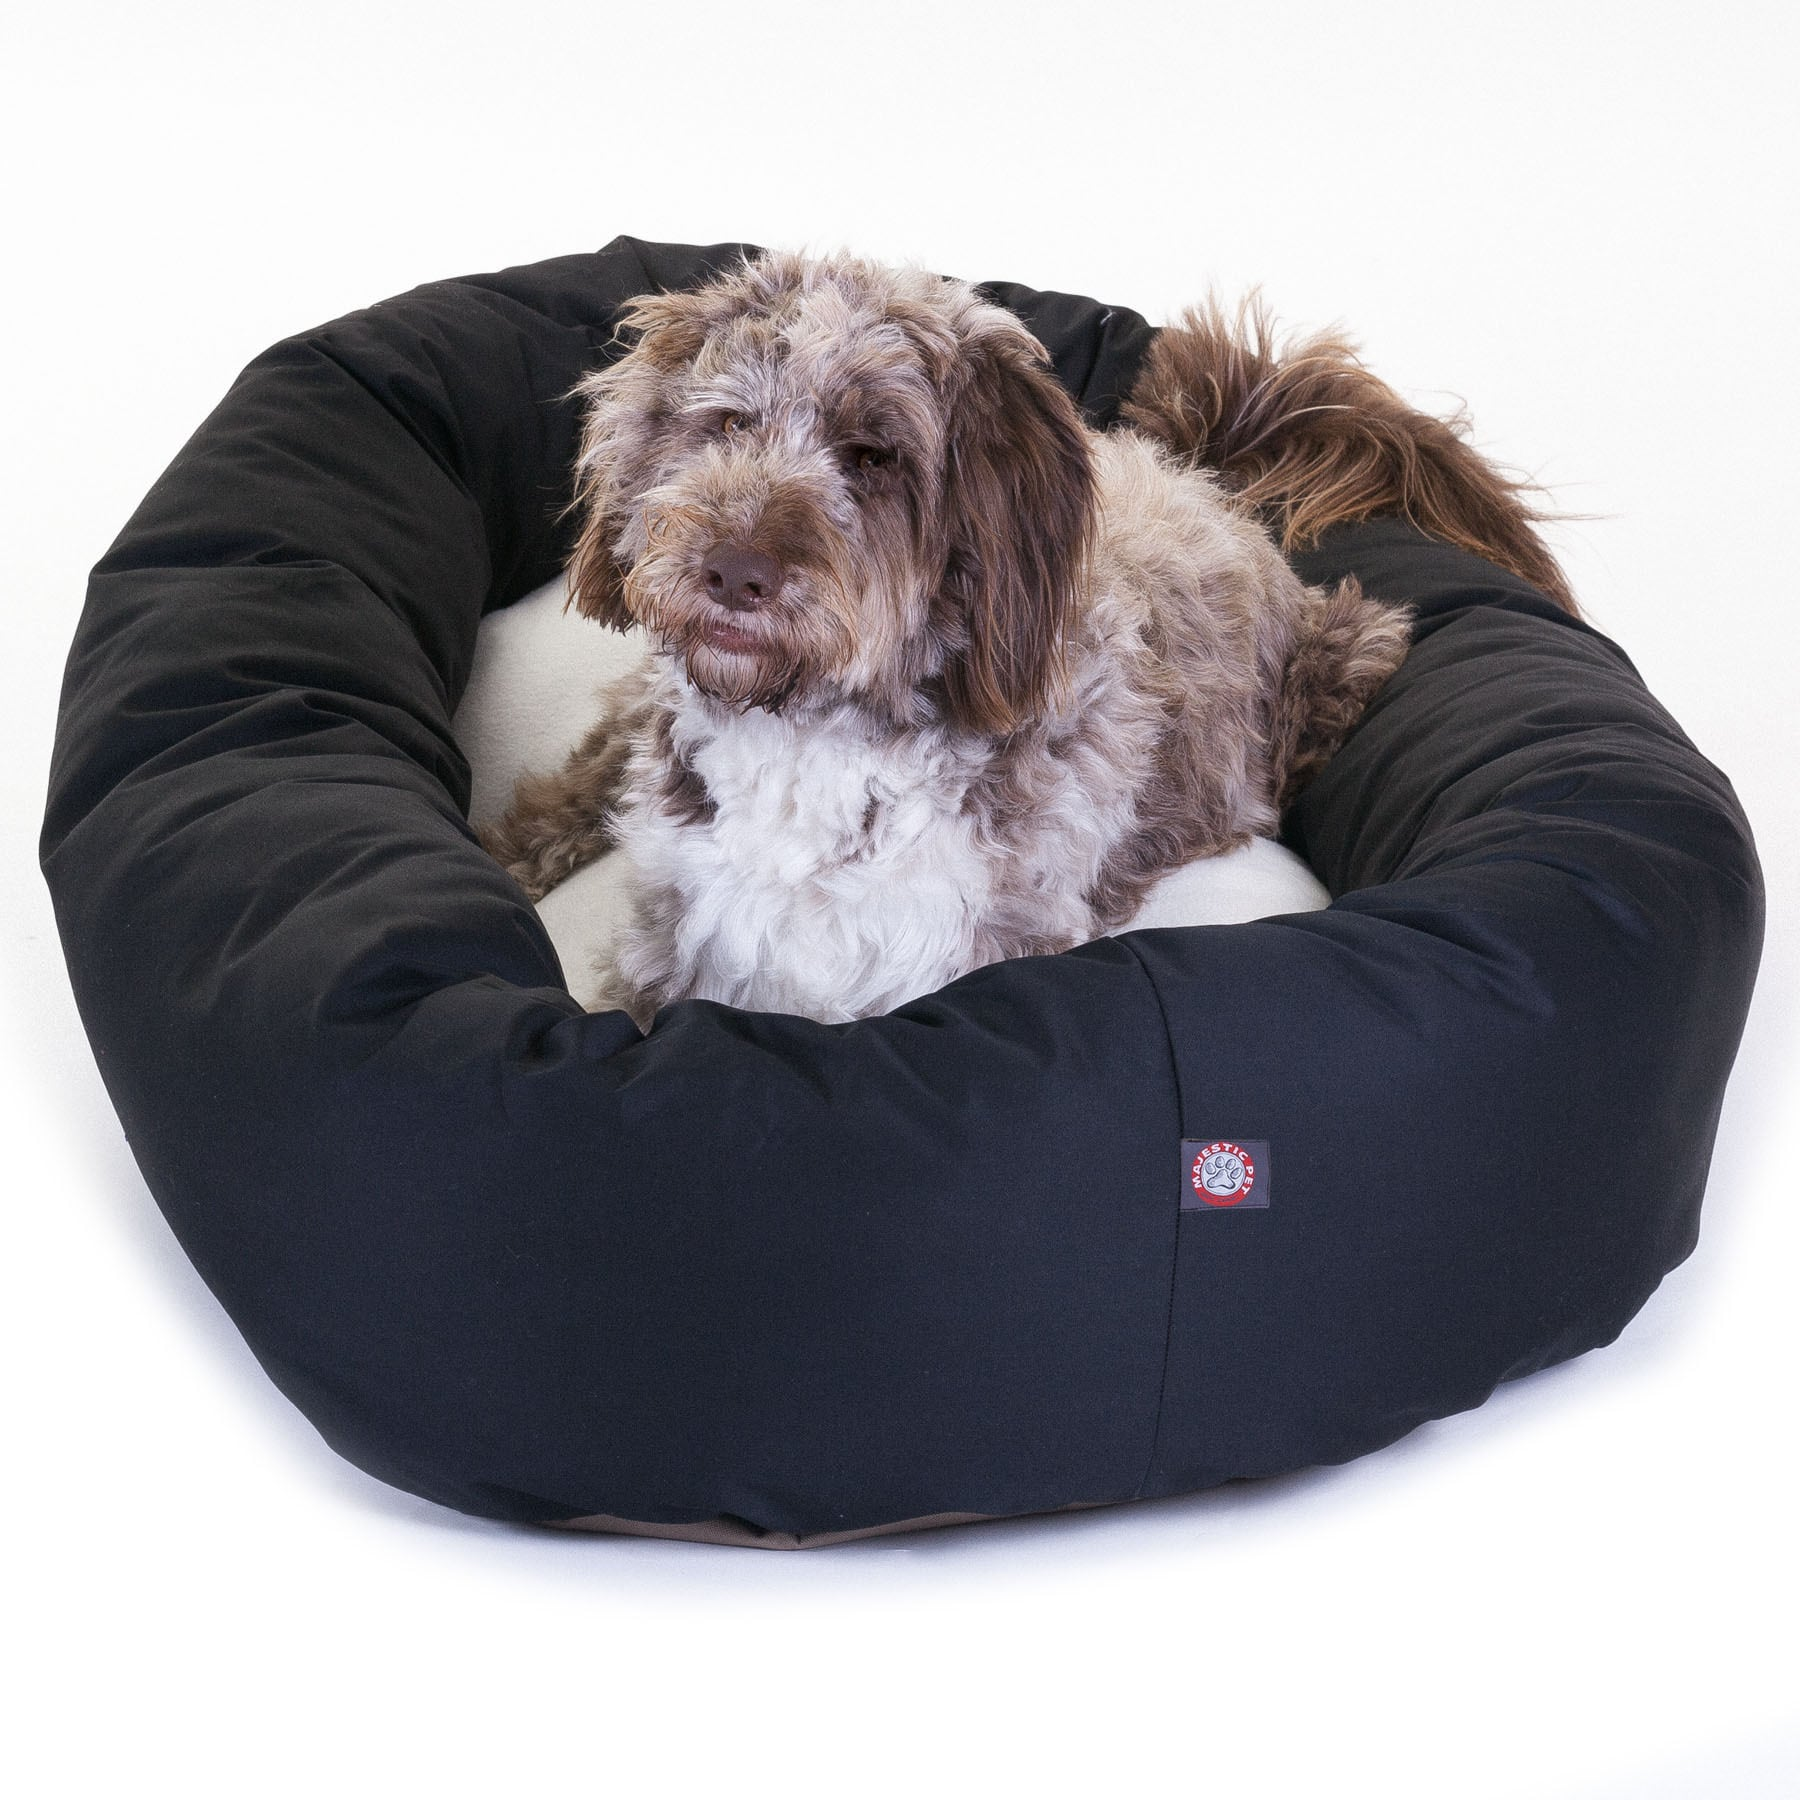 Majestic Pet Bagel-style Comfortable 52-inch Dog Bed in B...